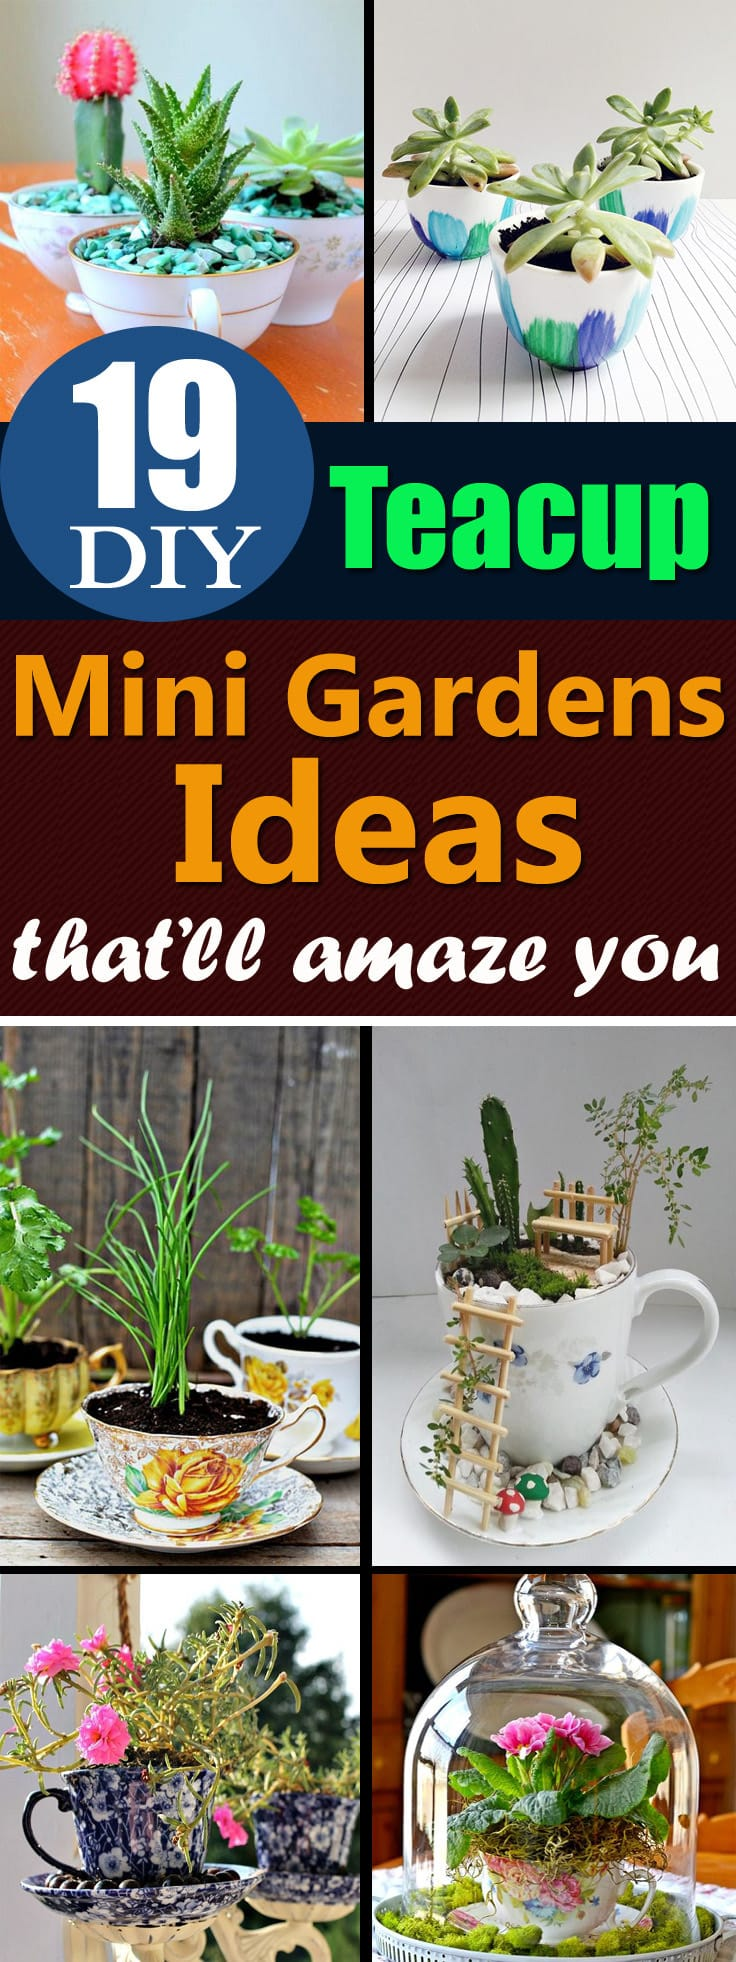 19 Cute Diy Teacup Garden Ideas Creative Teacup Planters Balcony Garden Web